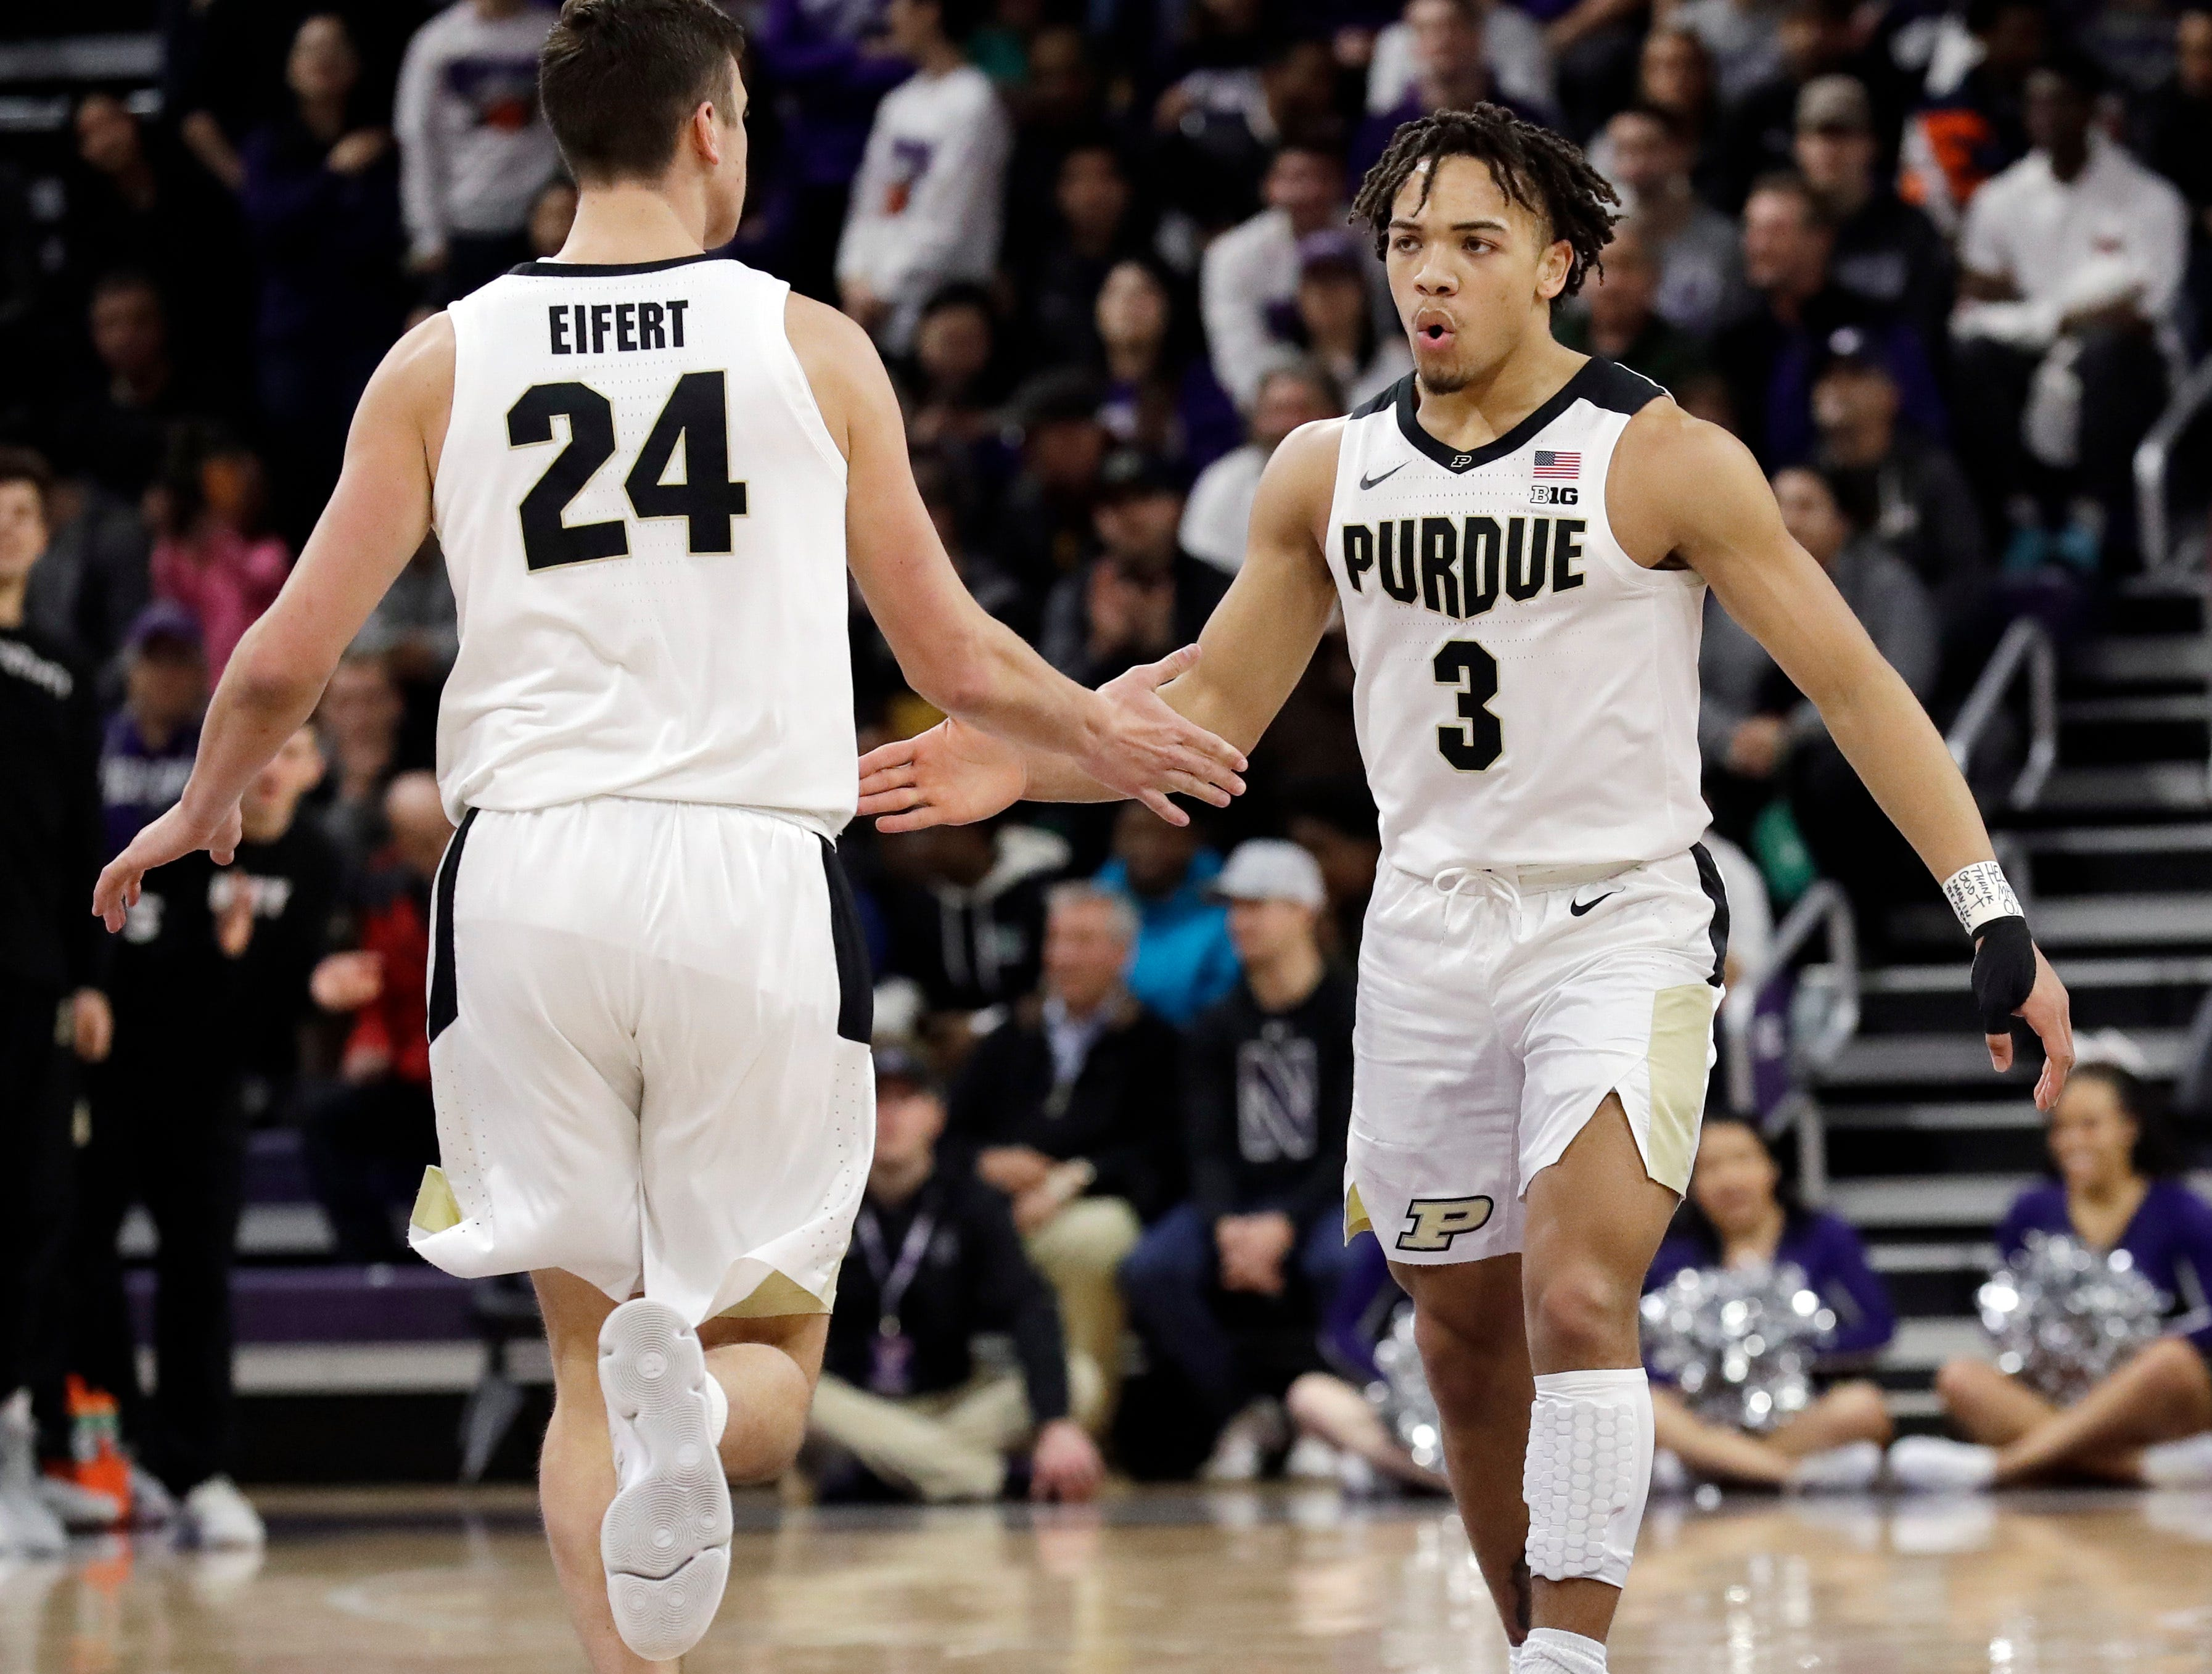 Purdue guard Carsen Edwards, right, celebrates with forward Grady Eifert after scoring a basket against Northwestern during the first half of an NCAA college basketball game Saturday, March 9, 2019, in Evanston, Ill